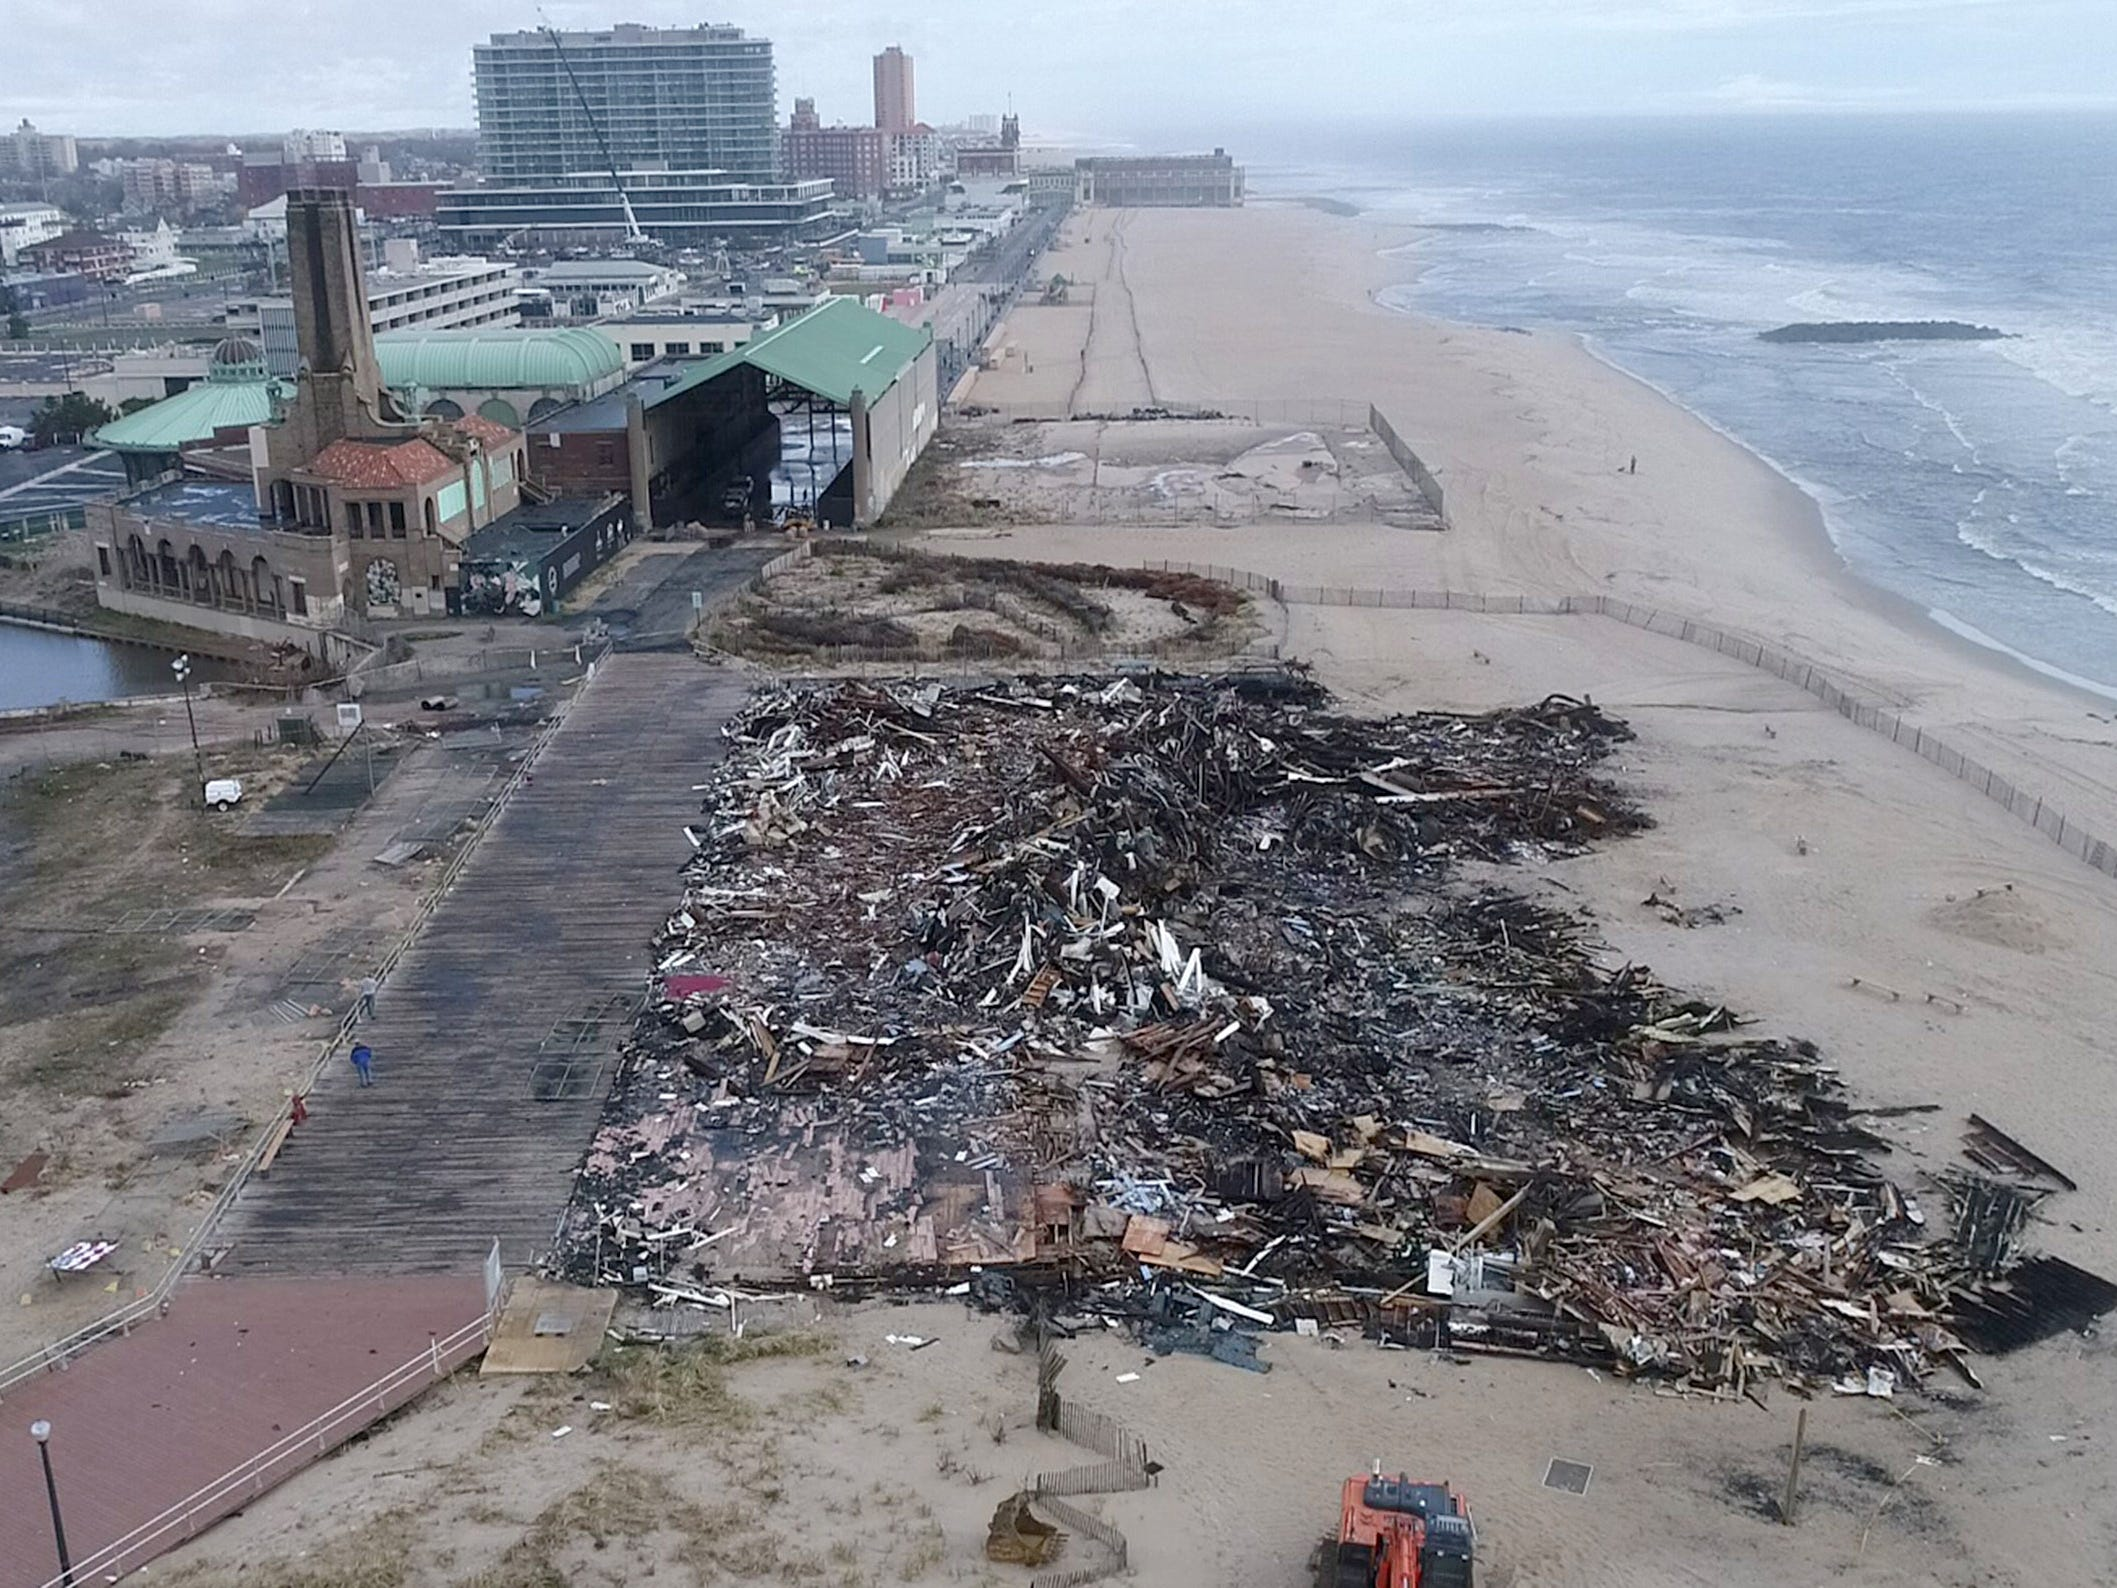 The debris pile left behind Monday morning, April 15, 2019, after a Saturday fire destroyed the pavilion on the north end of the Ocean Grove boardwalk.